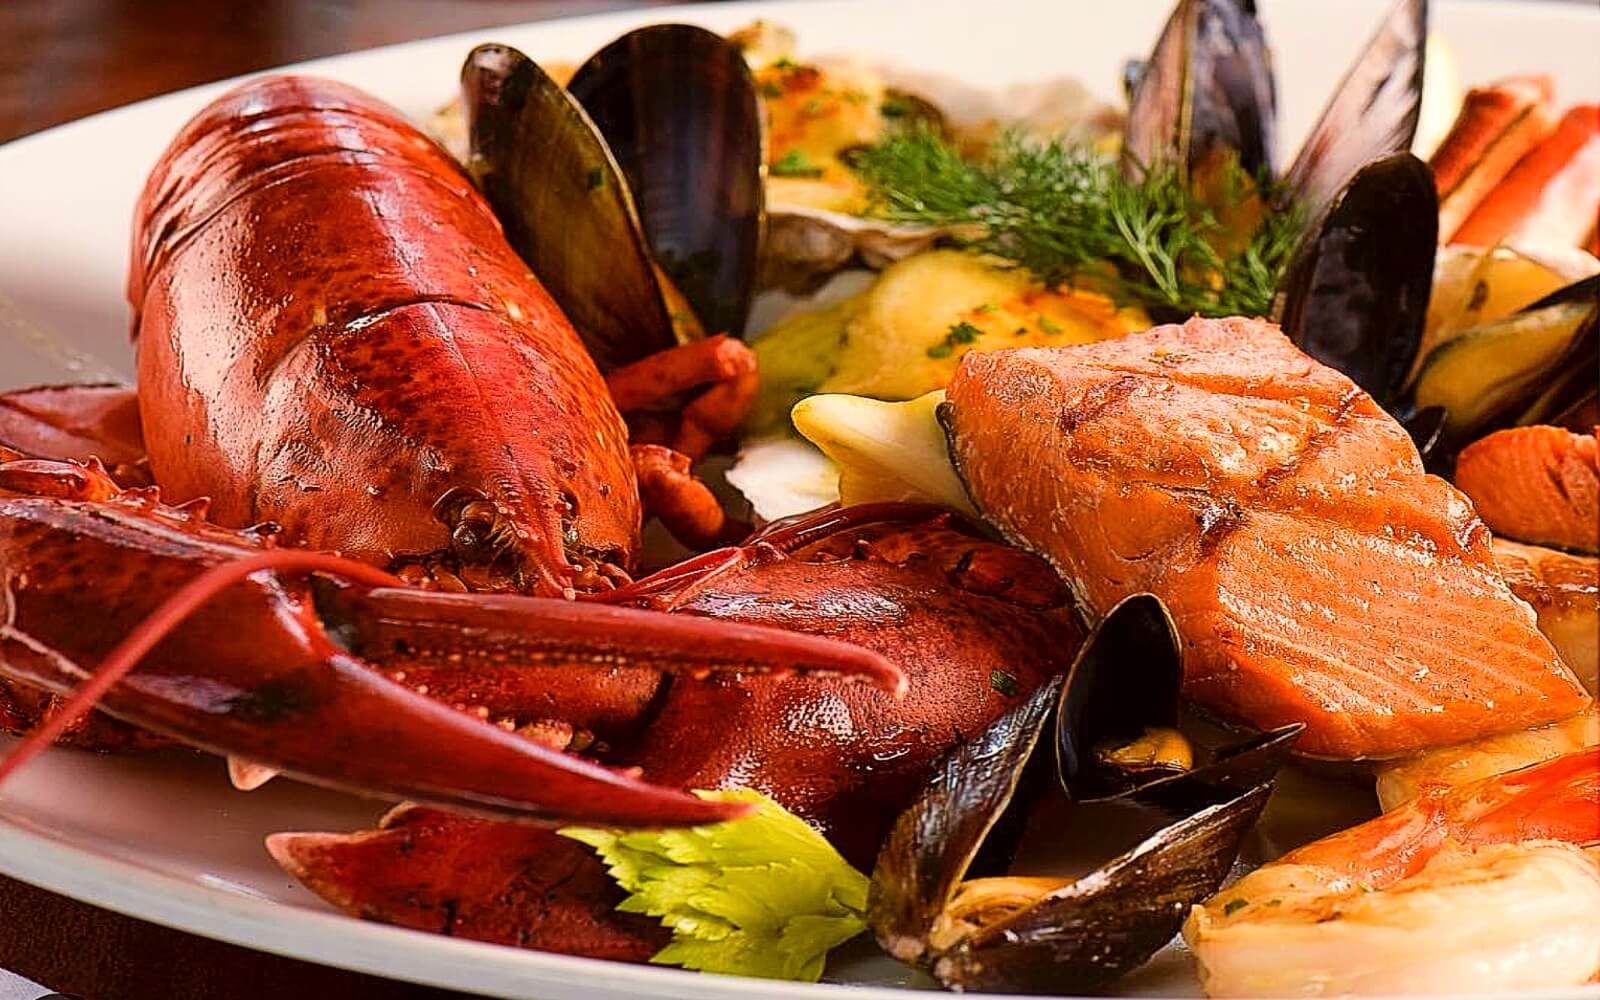 A seafood platter at Joe Fortes, Vancouver